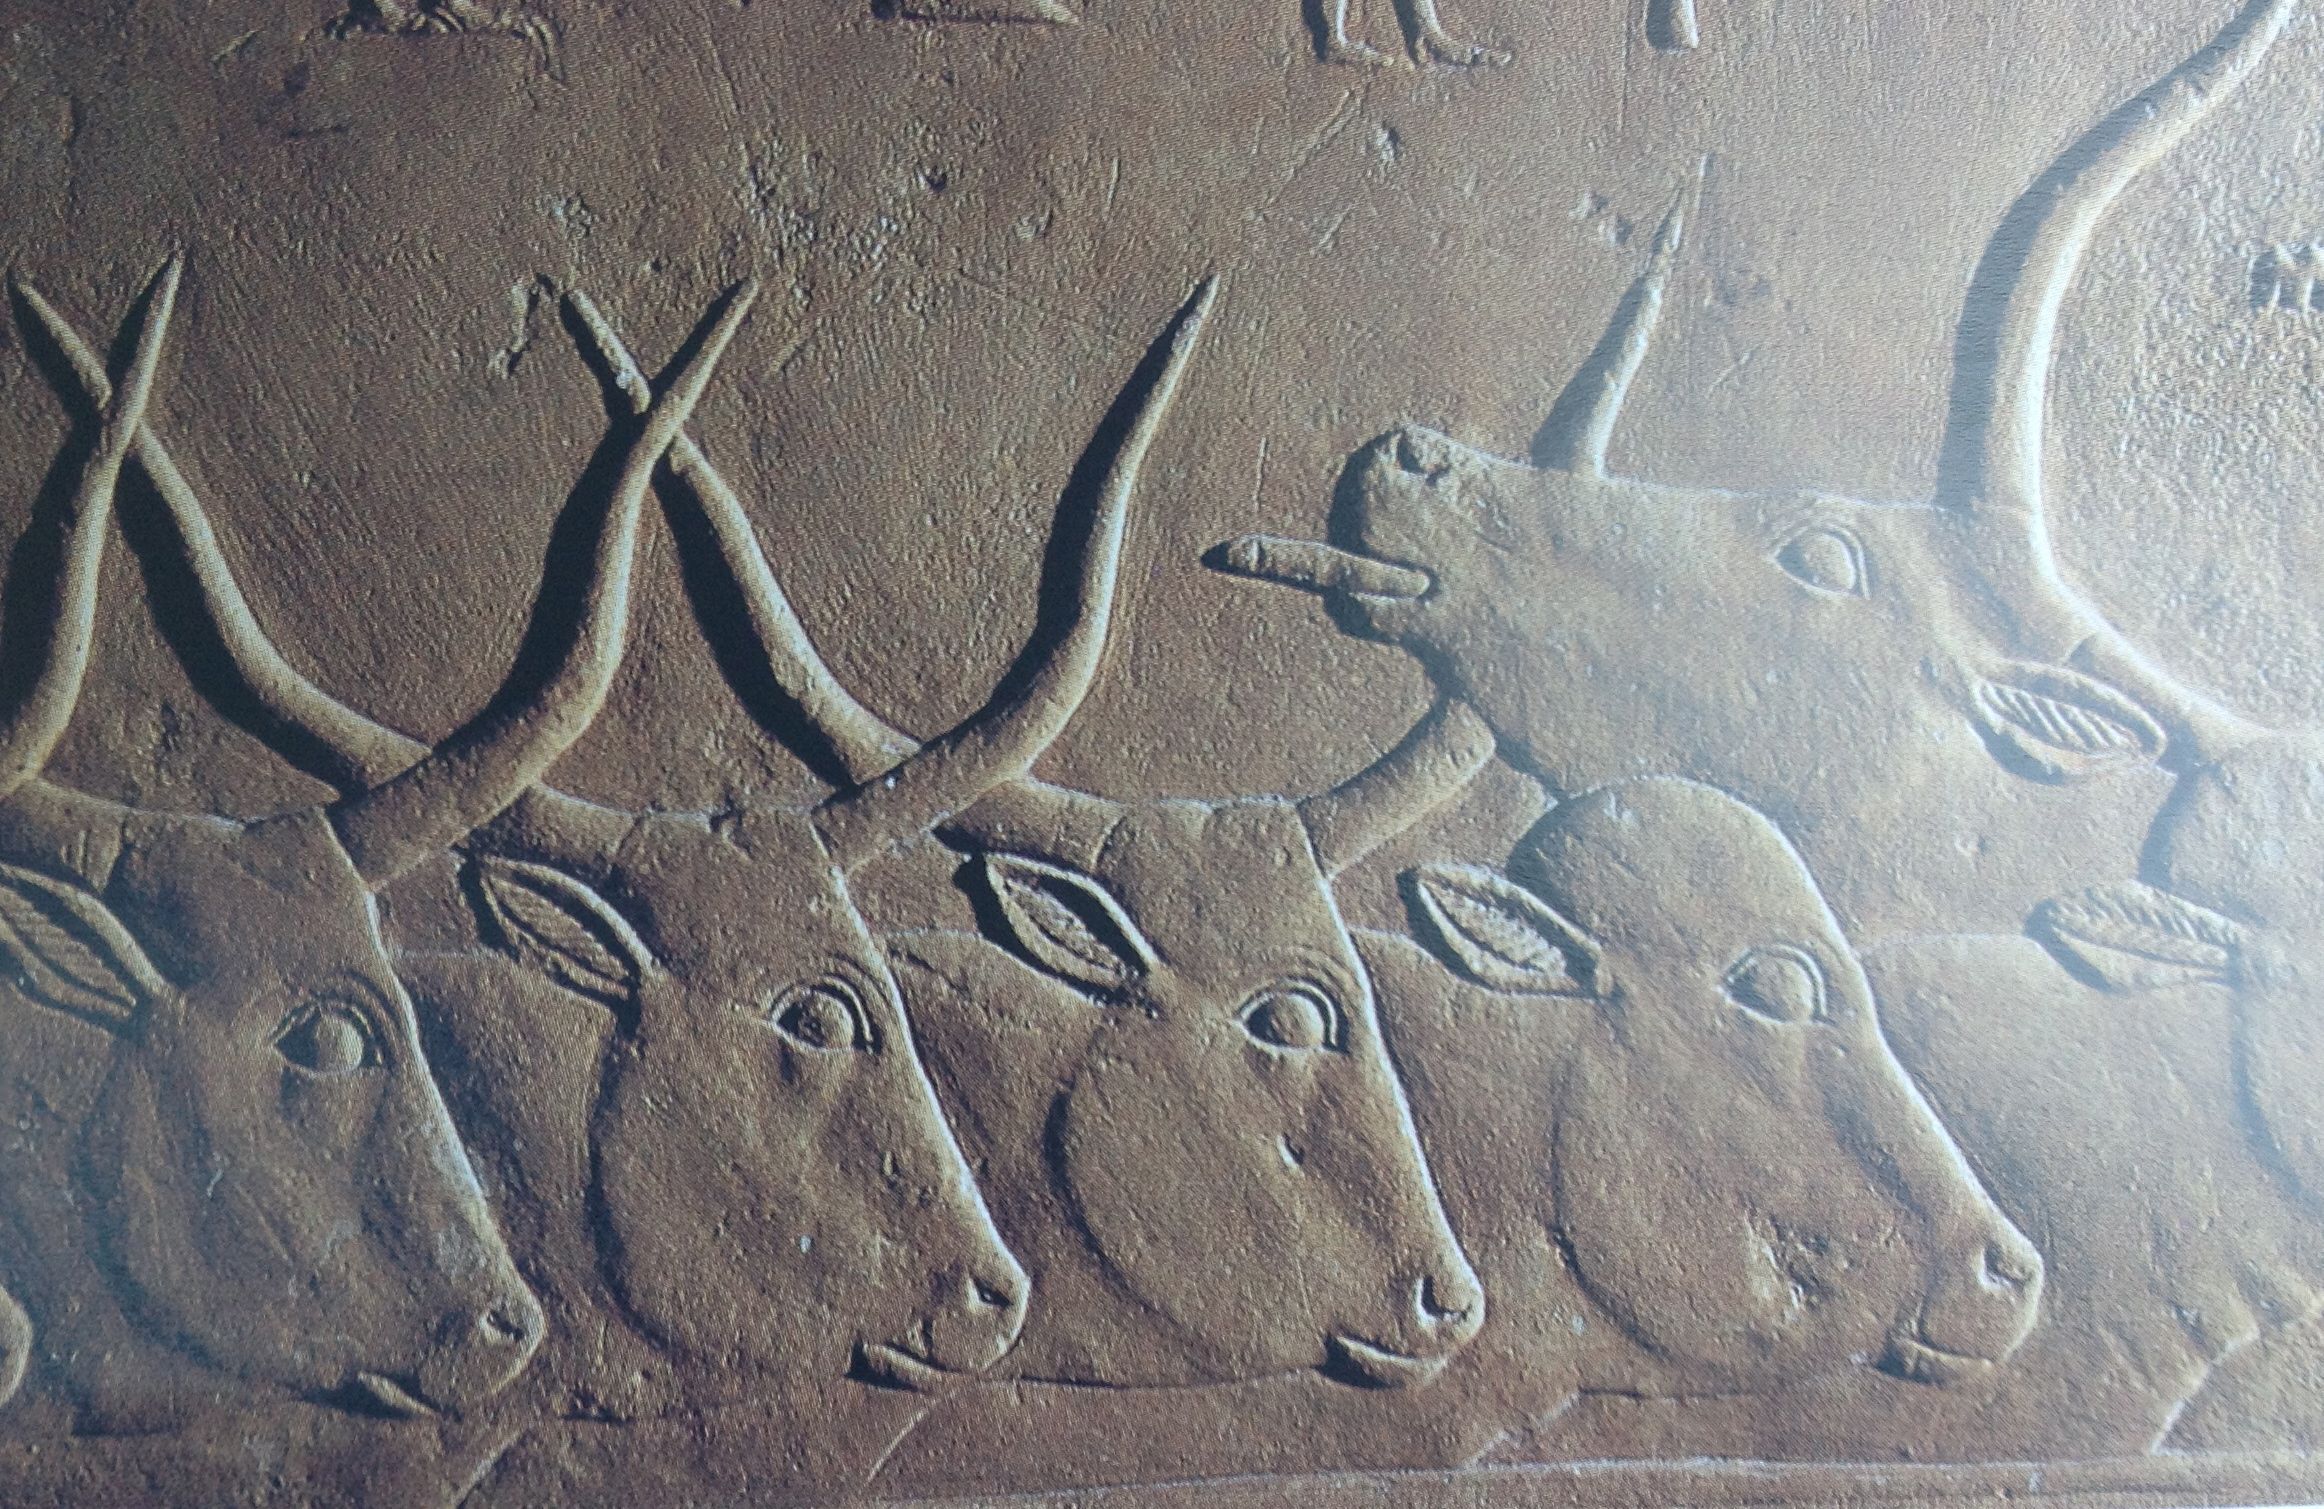 ian kingship and animal husbandry long horned cattle saqqara 6th dyn mastaba of kastjemni image courtesy